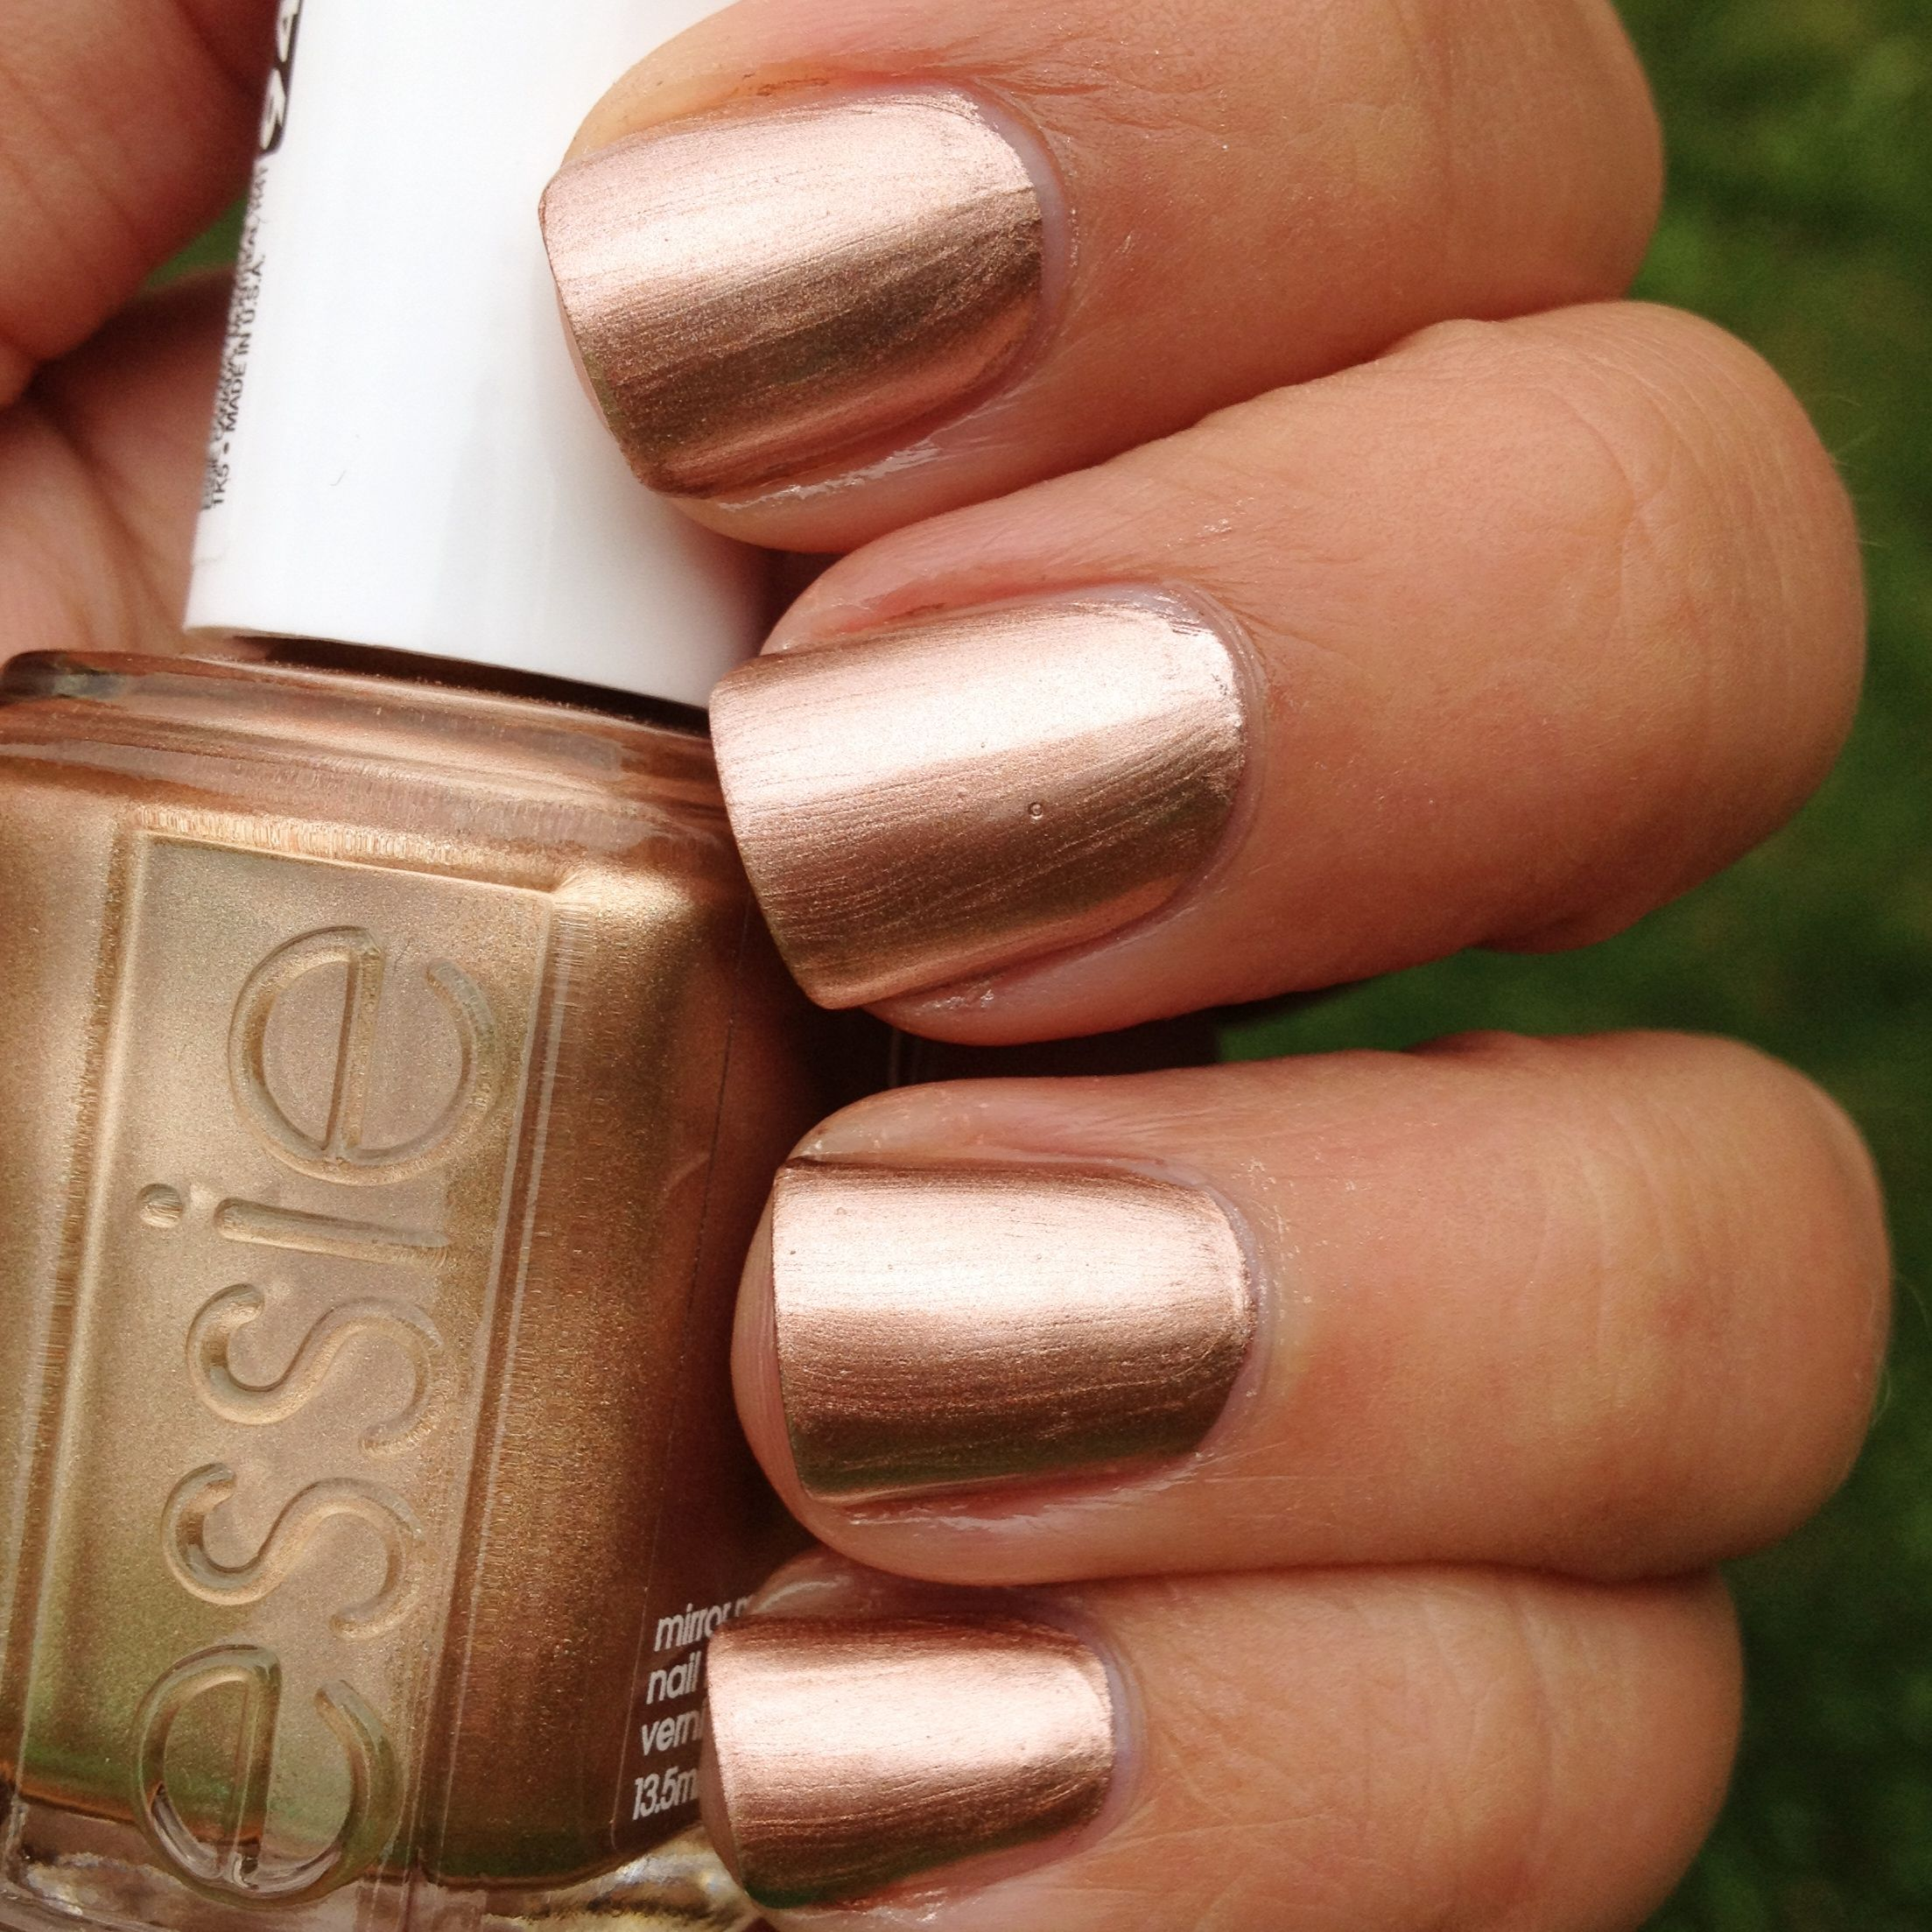 Essie Penny Talk Swatch And Review | White nail polish, Essie nail ...